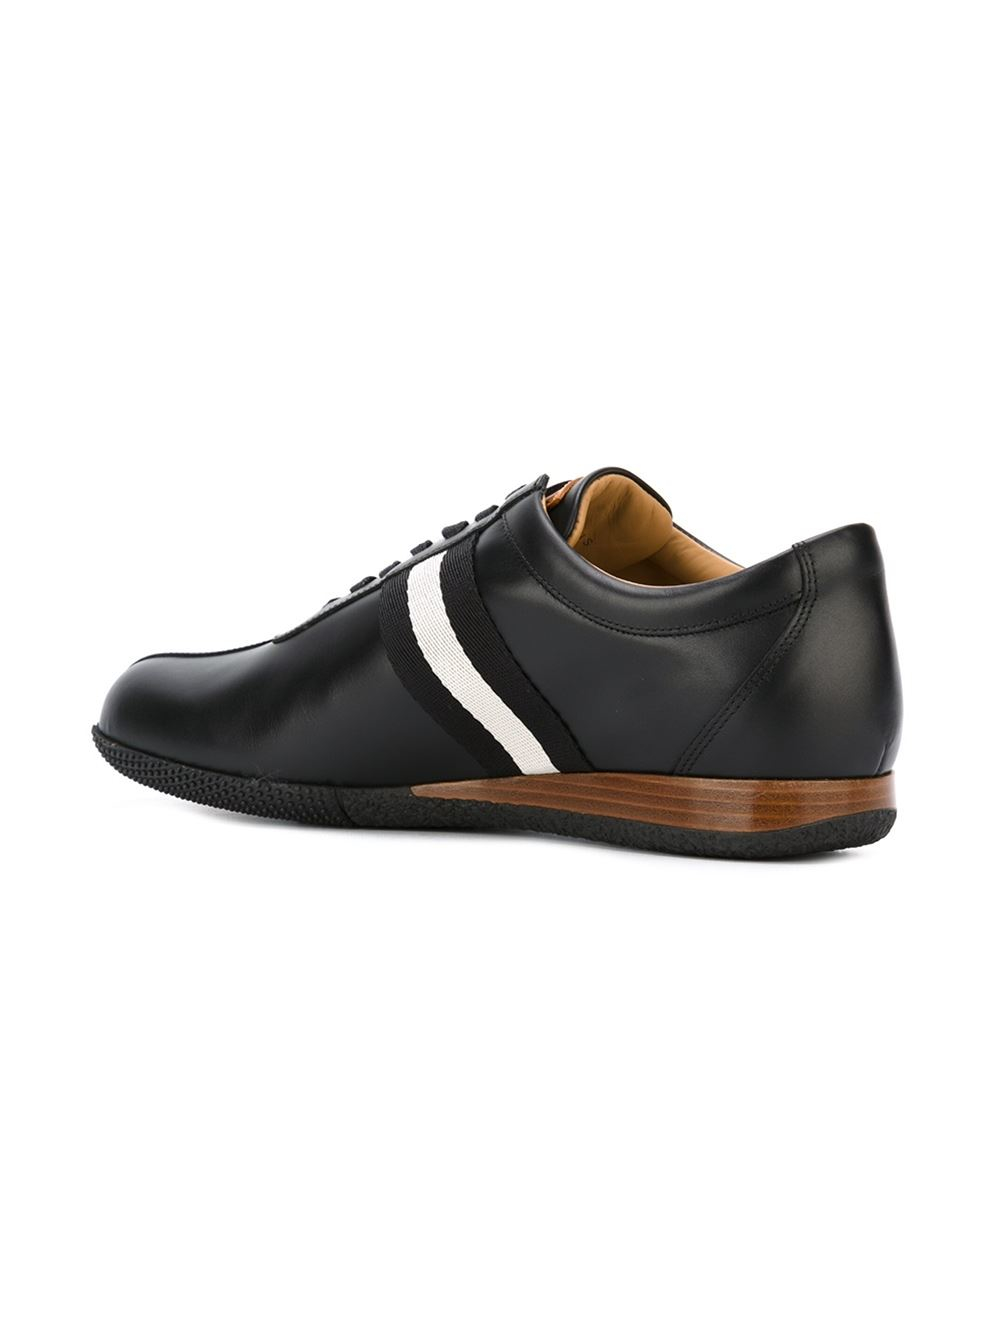 Bally Frenz Leather Low Top Sneakers In Black For Men Lyst